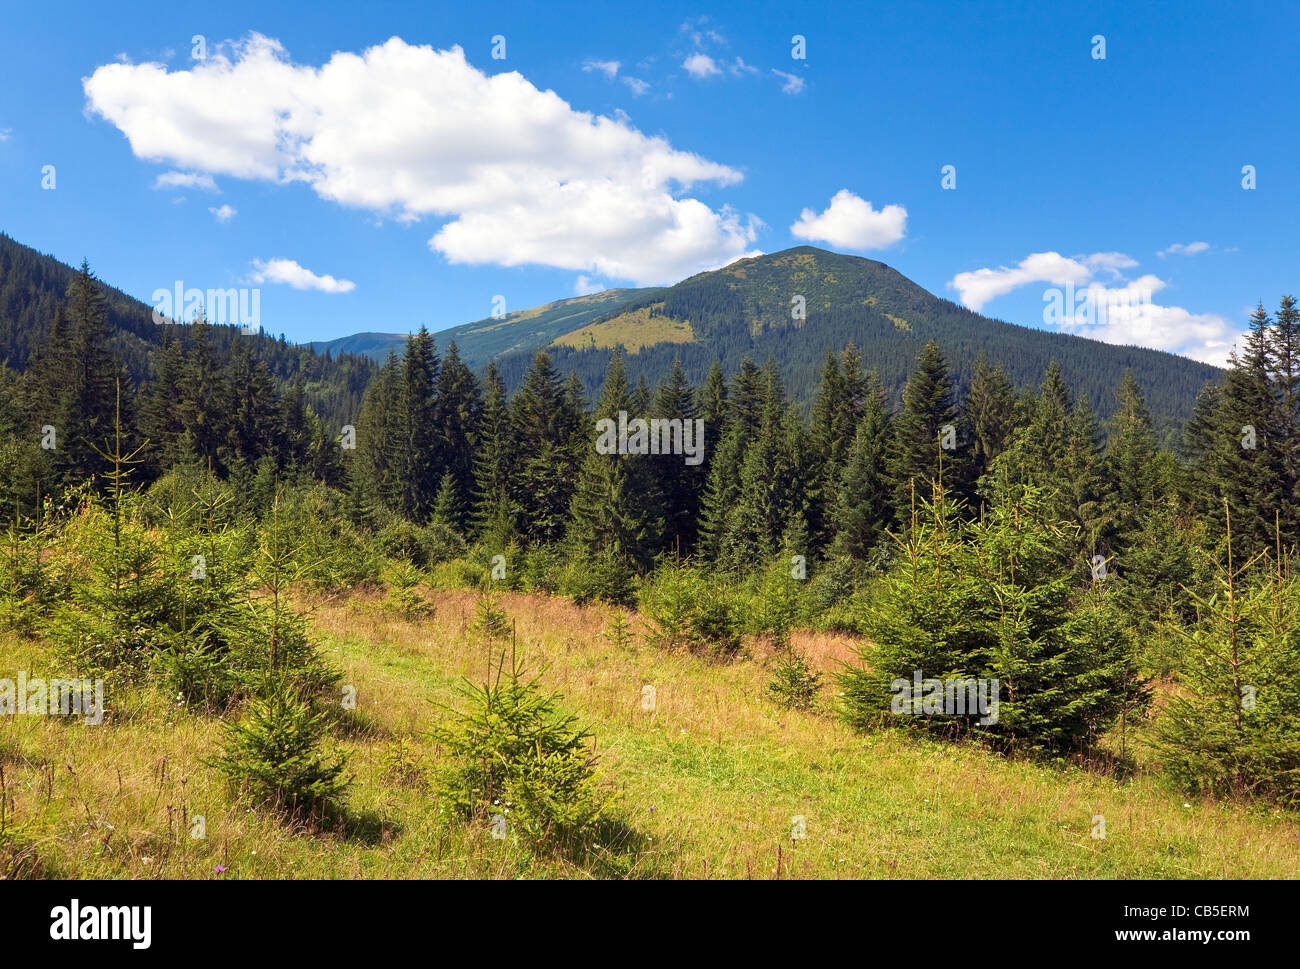 Summer mountain view with glade and conifer forest - Stock Image